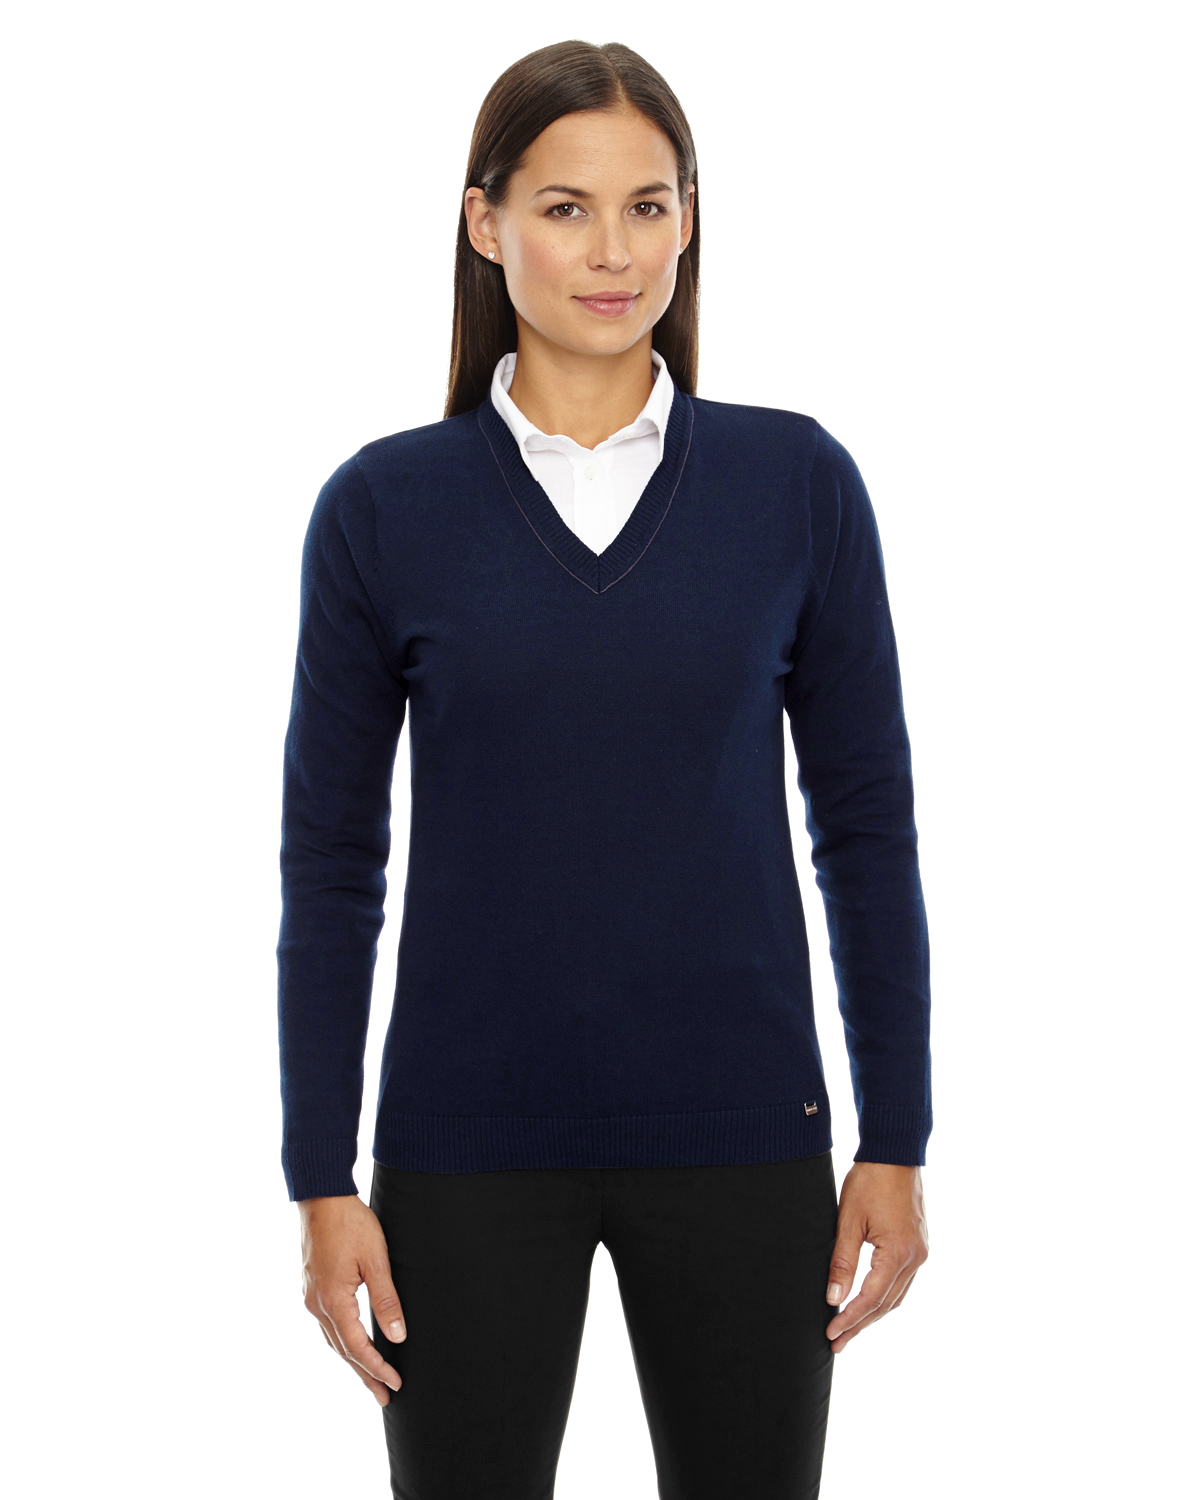 Ash City - 71010 Ladies' Merton Soft Touch V-Neck Sweater